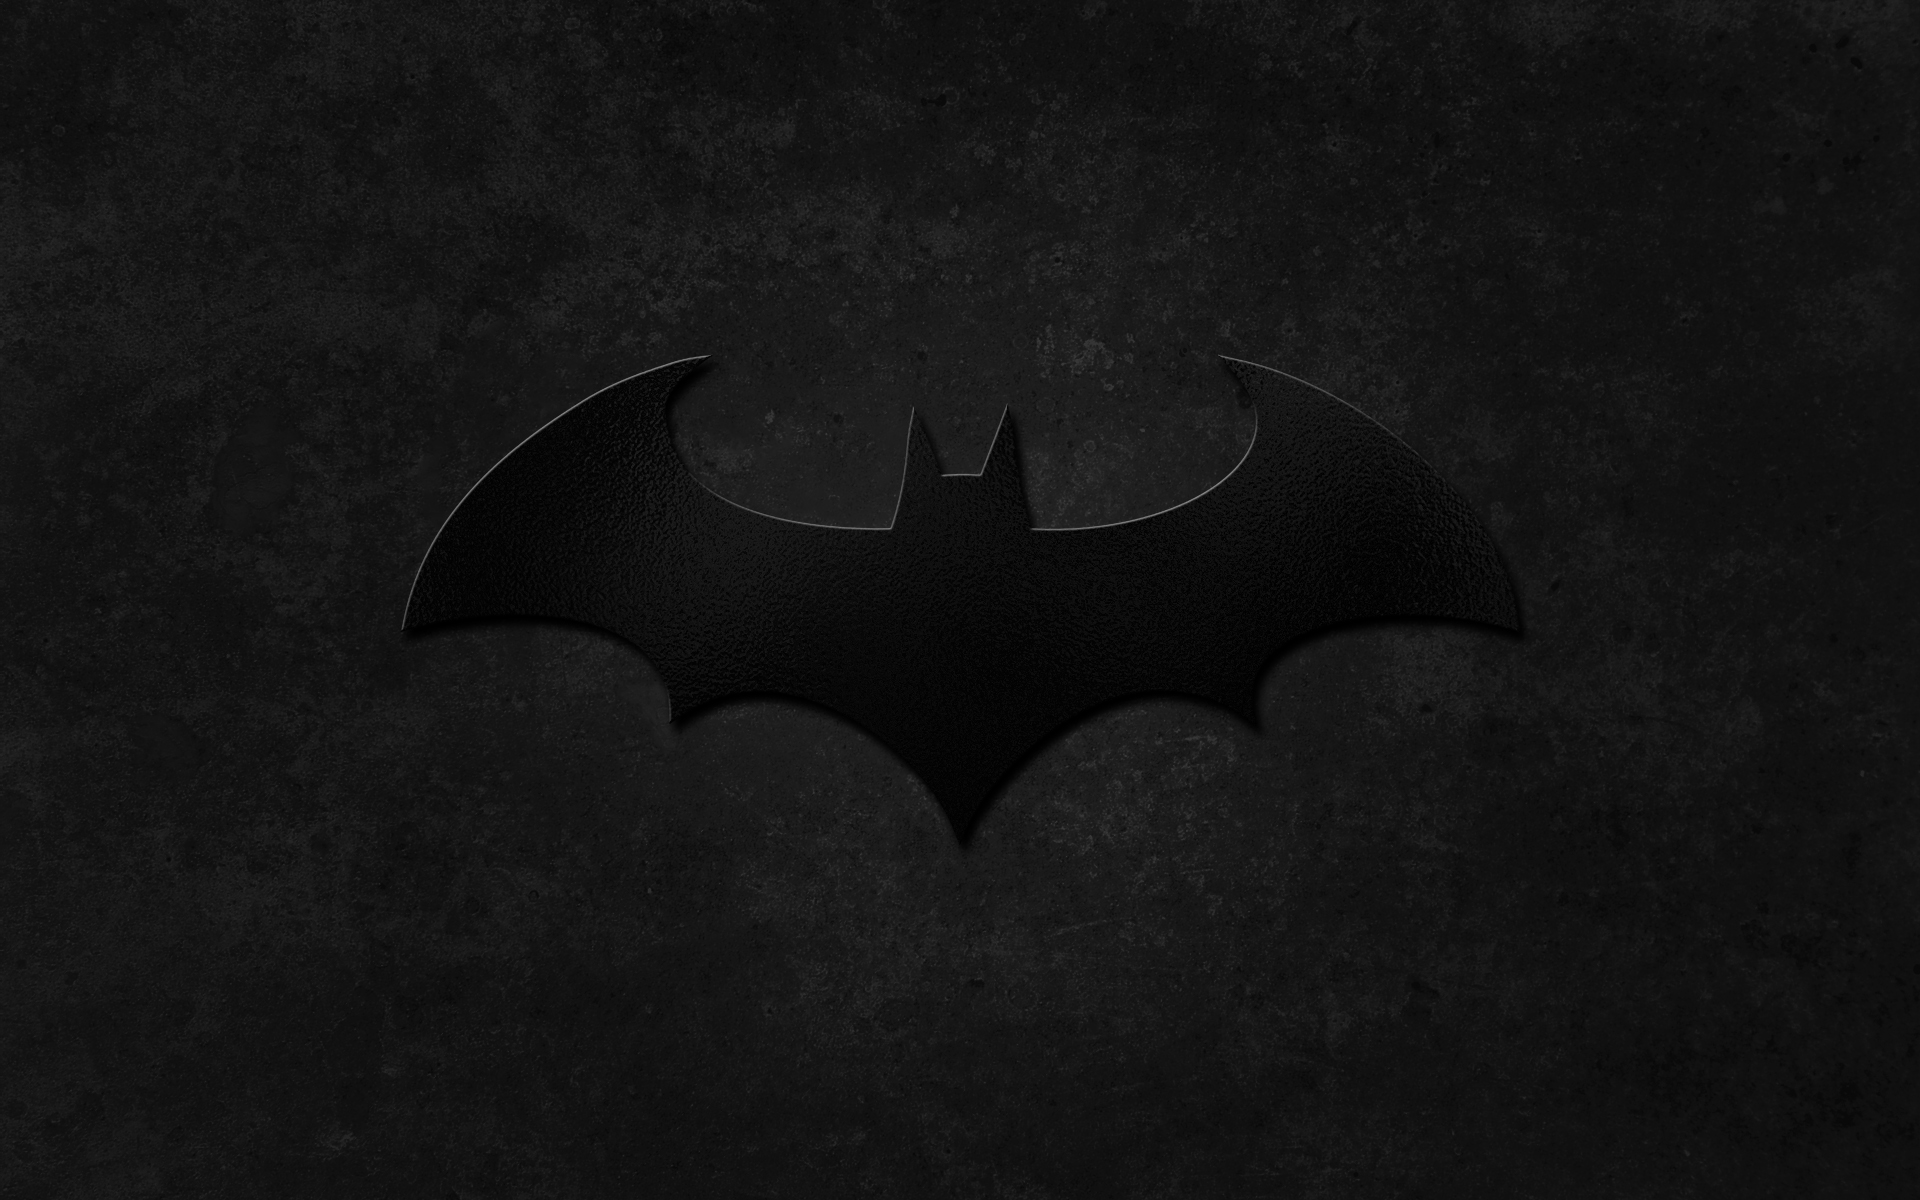 Batman Logo, Batman, Comics, DC Comics, Black Wallpapers HD ...